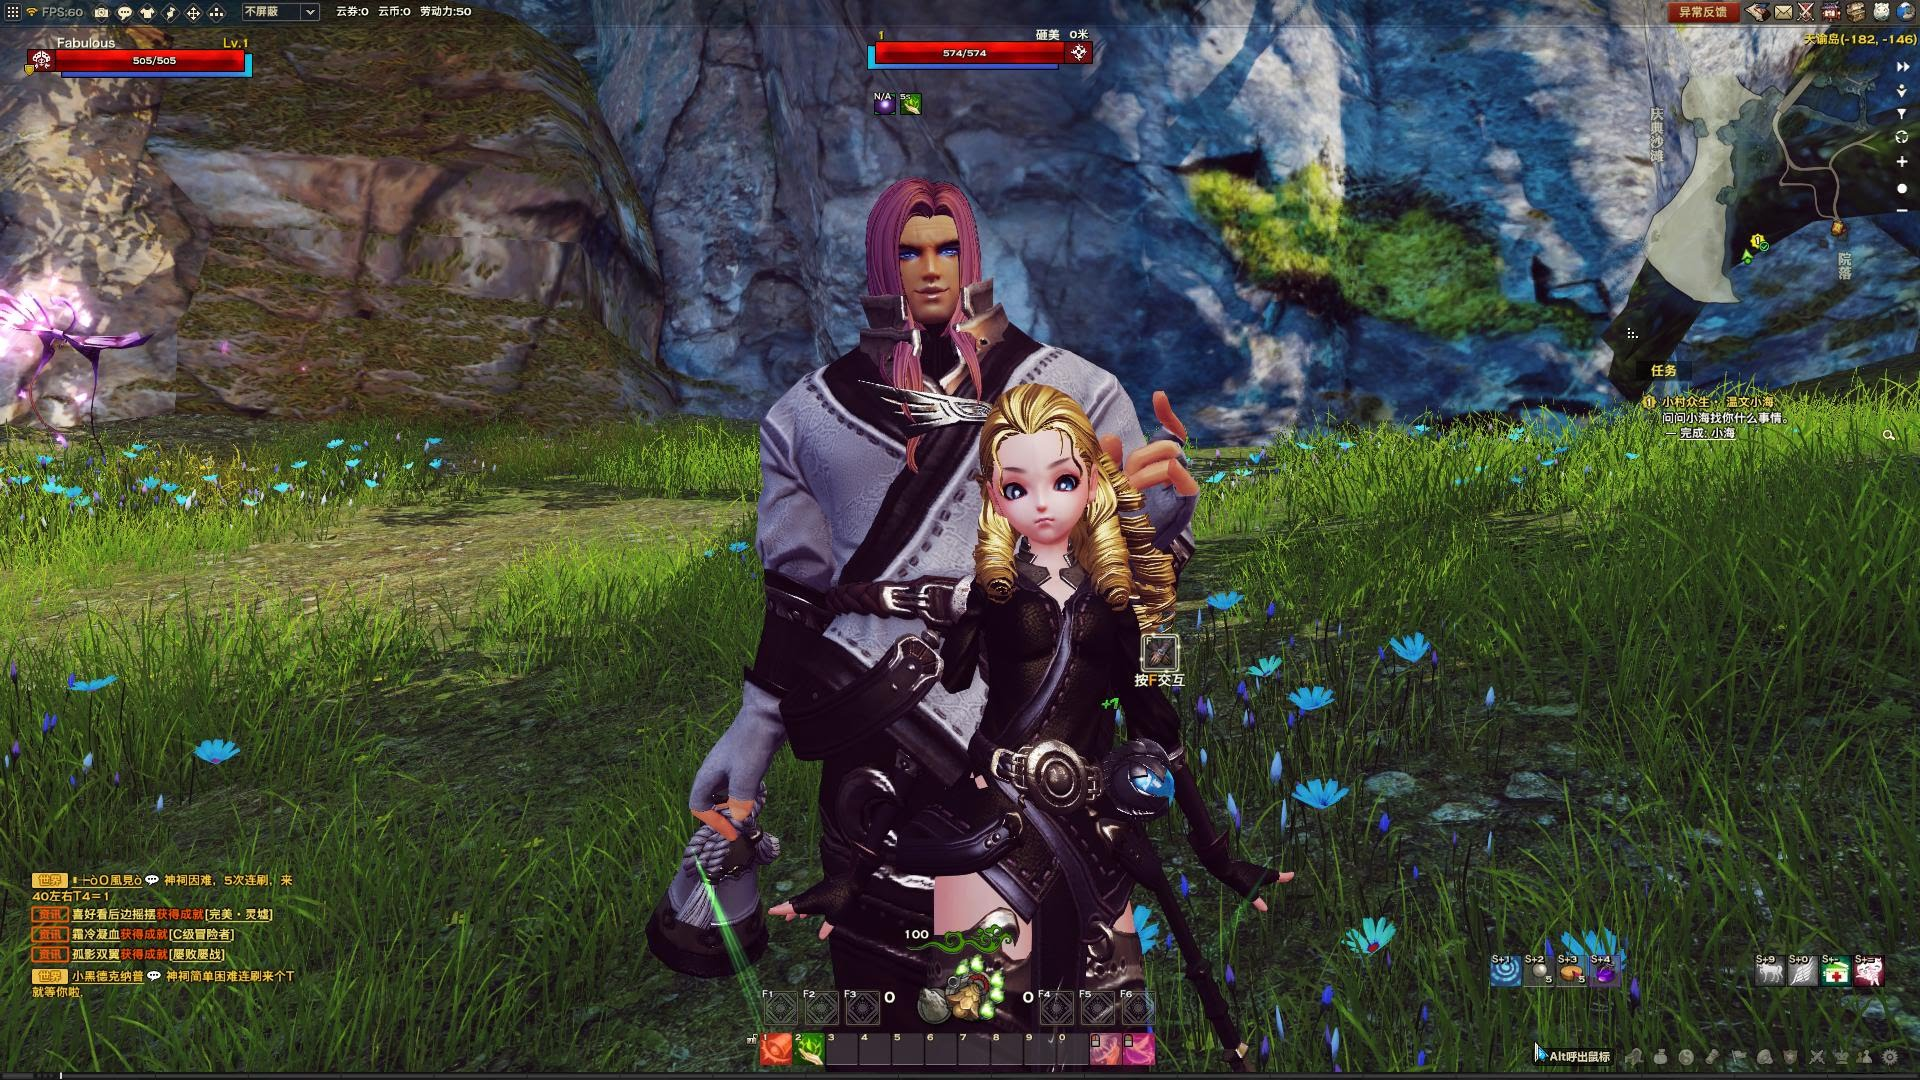 revelation online Beta account CN